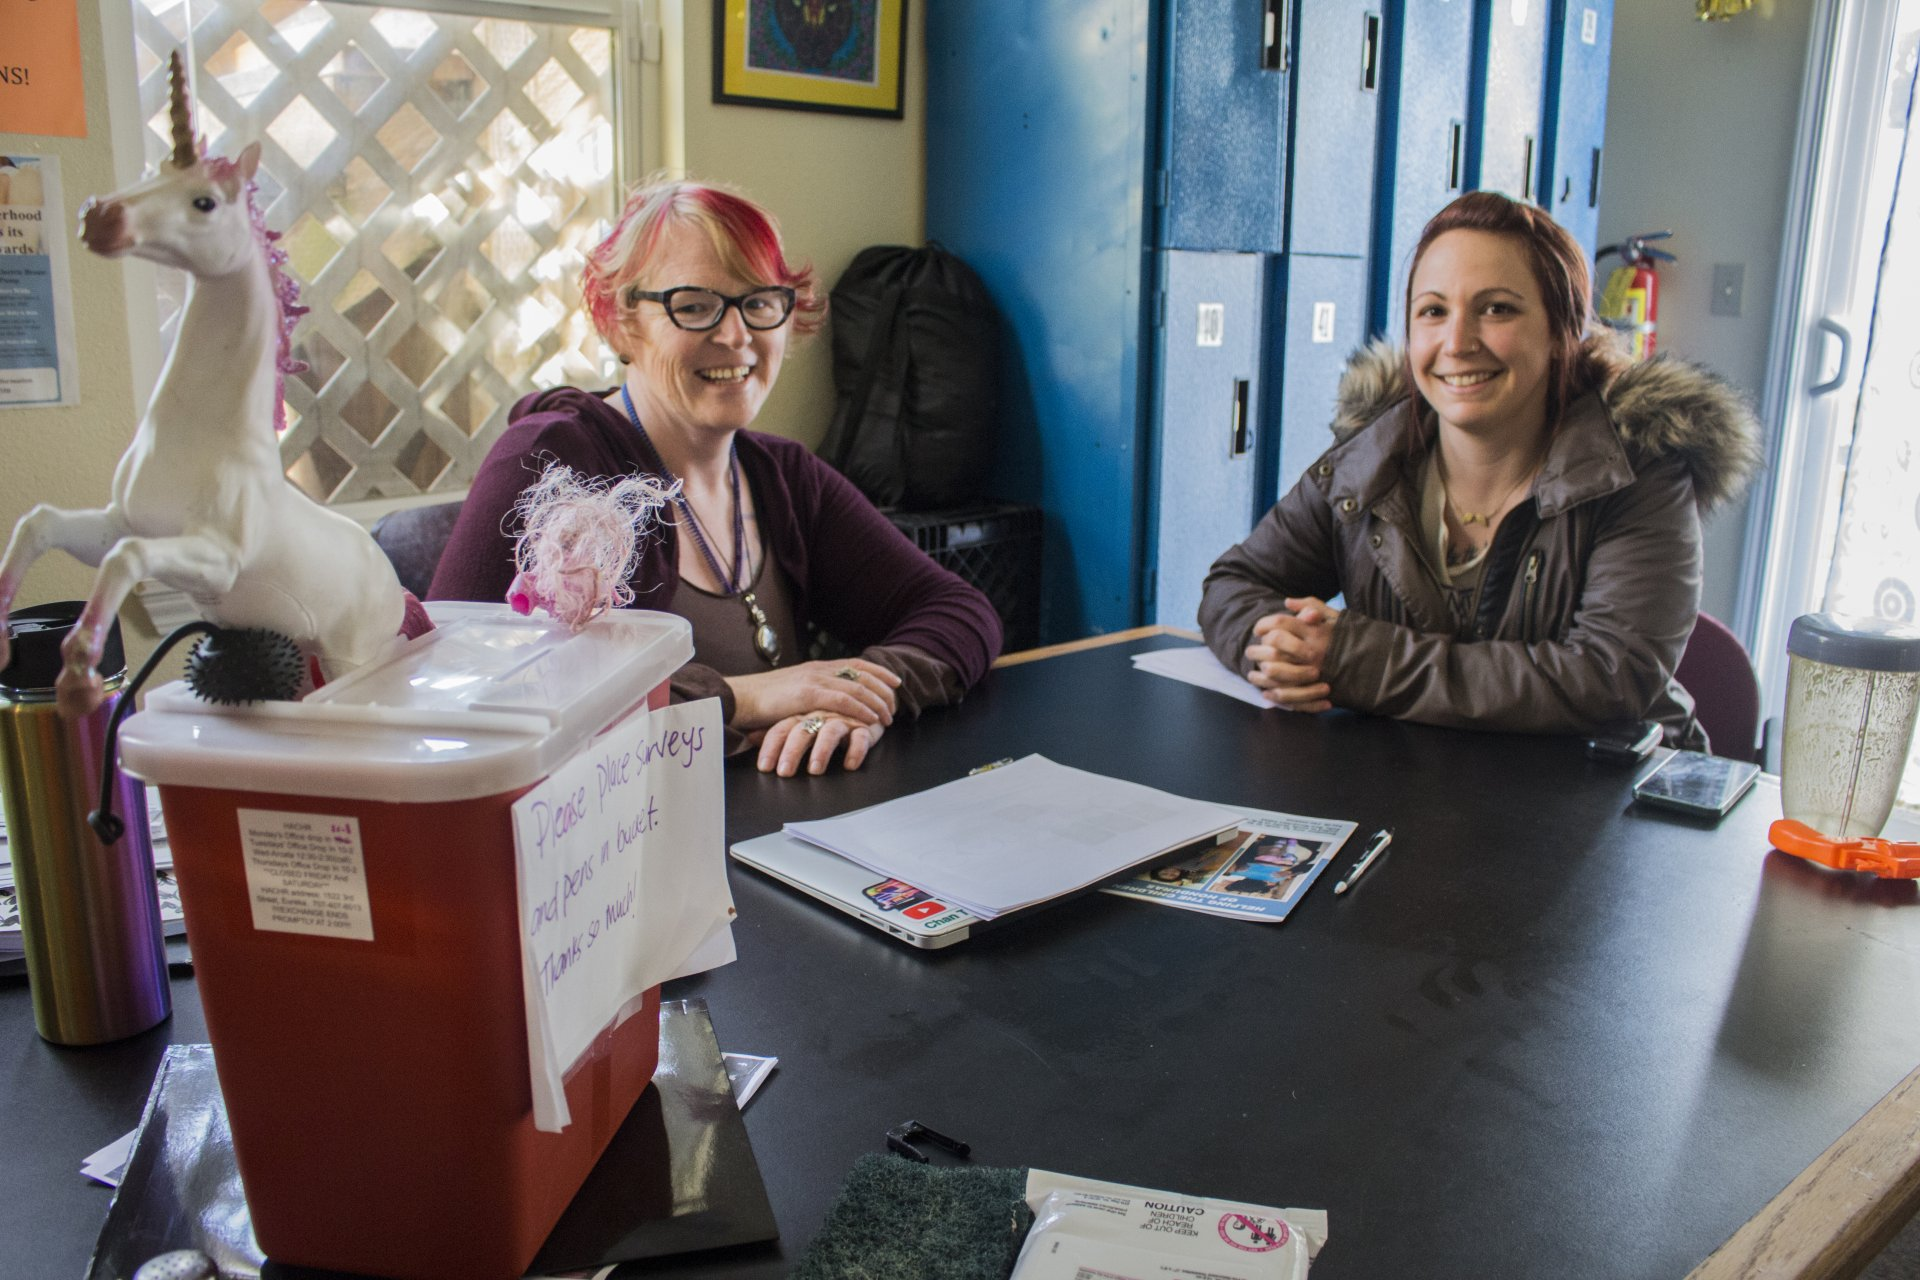 Brandie Wilson, founder of HACHR, and Jessica Smith, programs coordinator, degress after a hectic Monday at Humboldt Area Center of Harm Reduction. Wilson started HACHR in 2013 and both are HSU alumni in socioolgy. | Photo by Tony Wallin